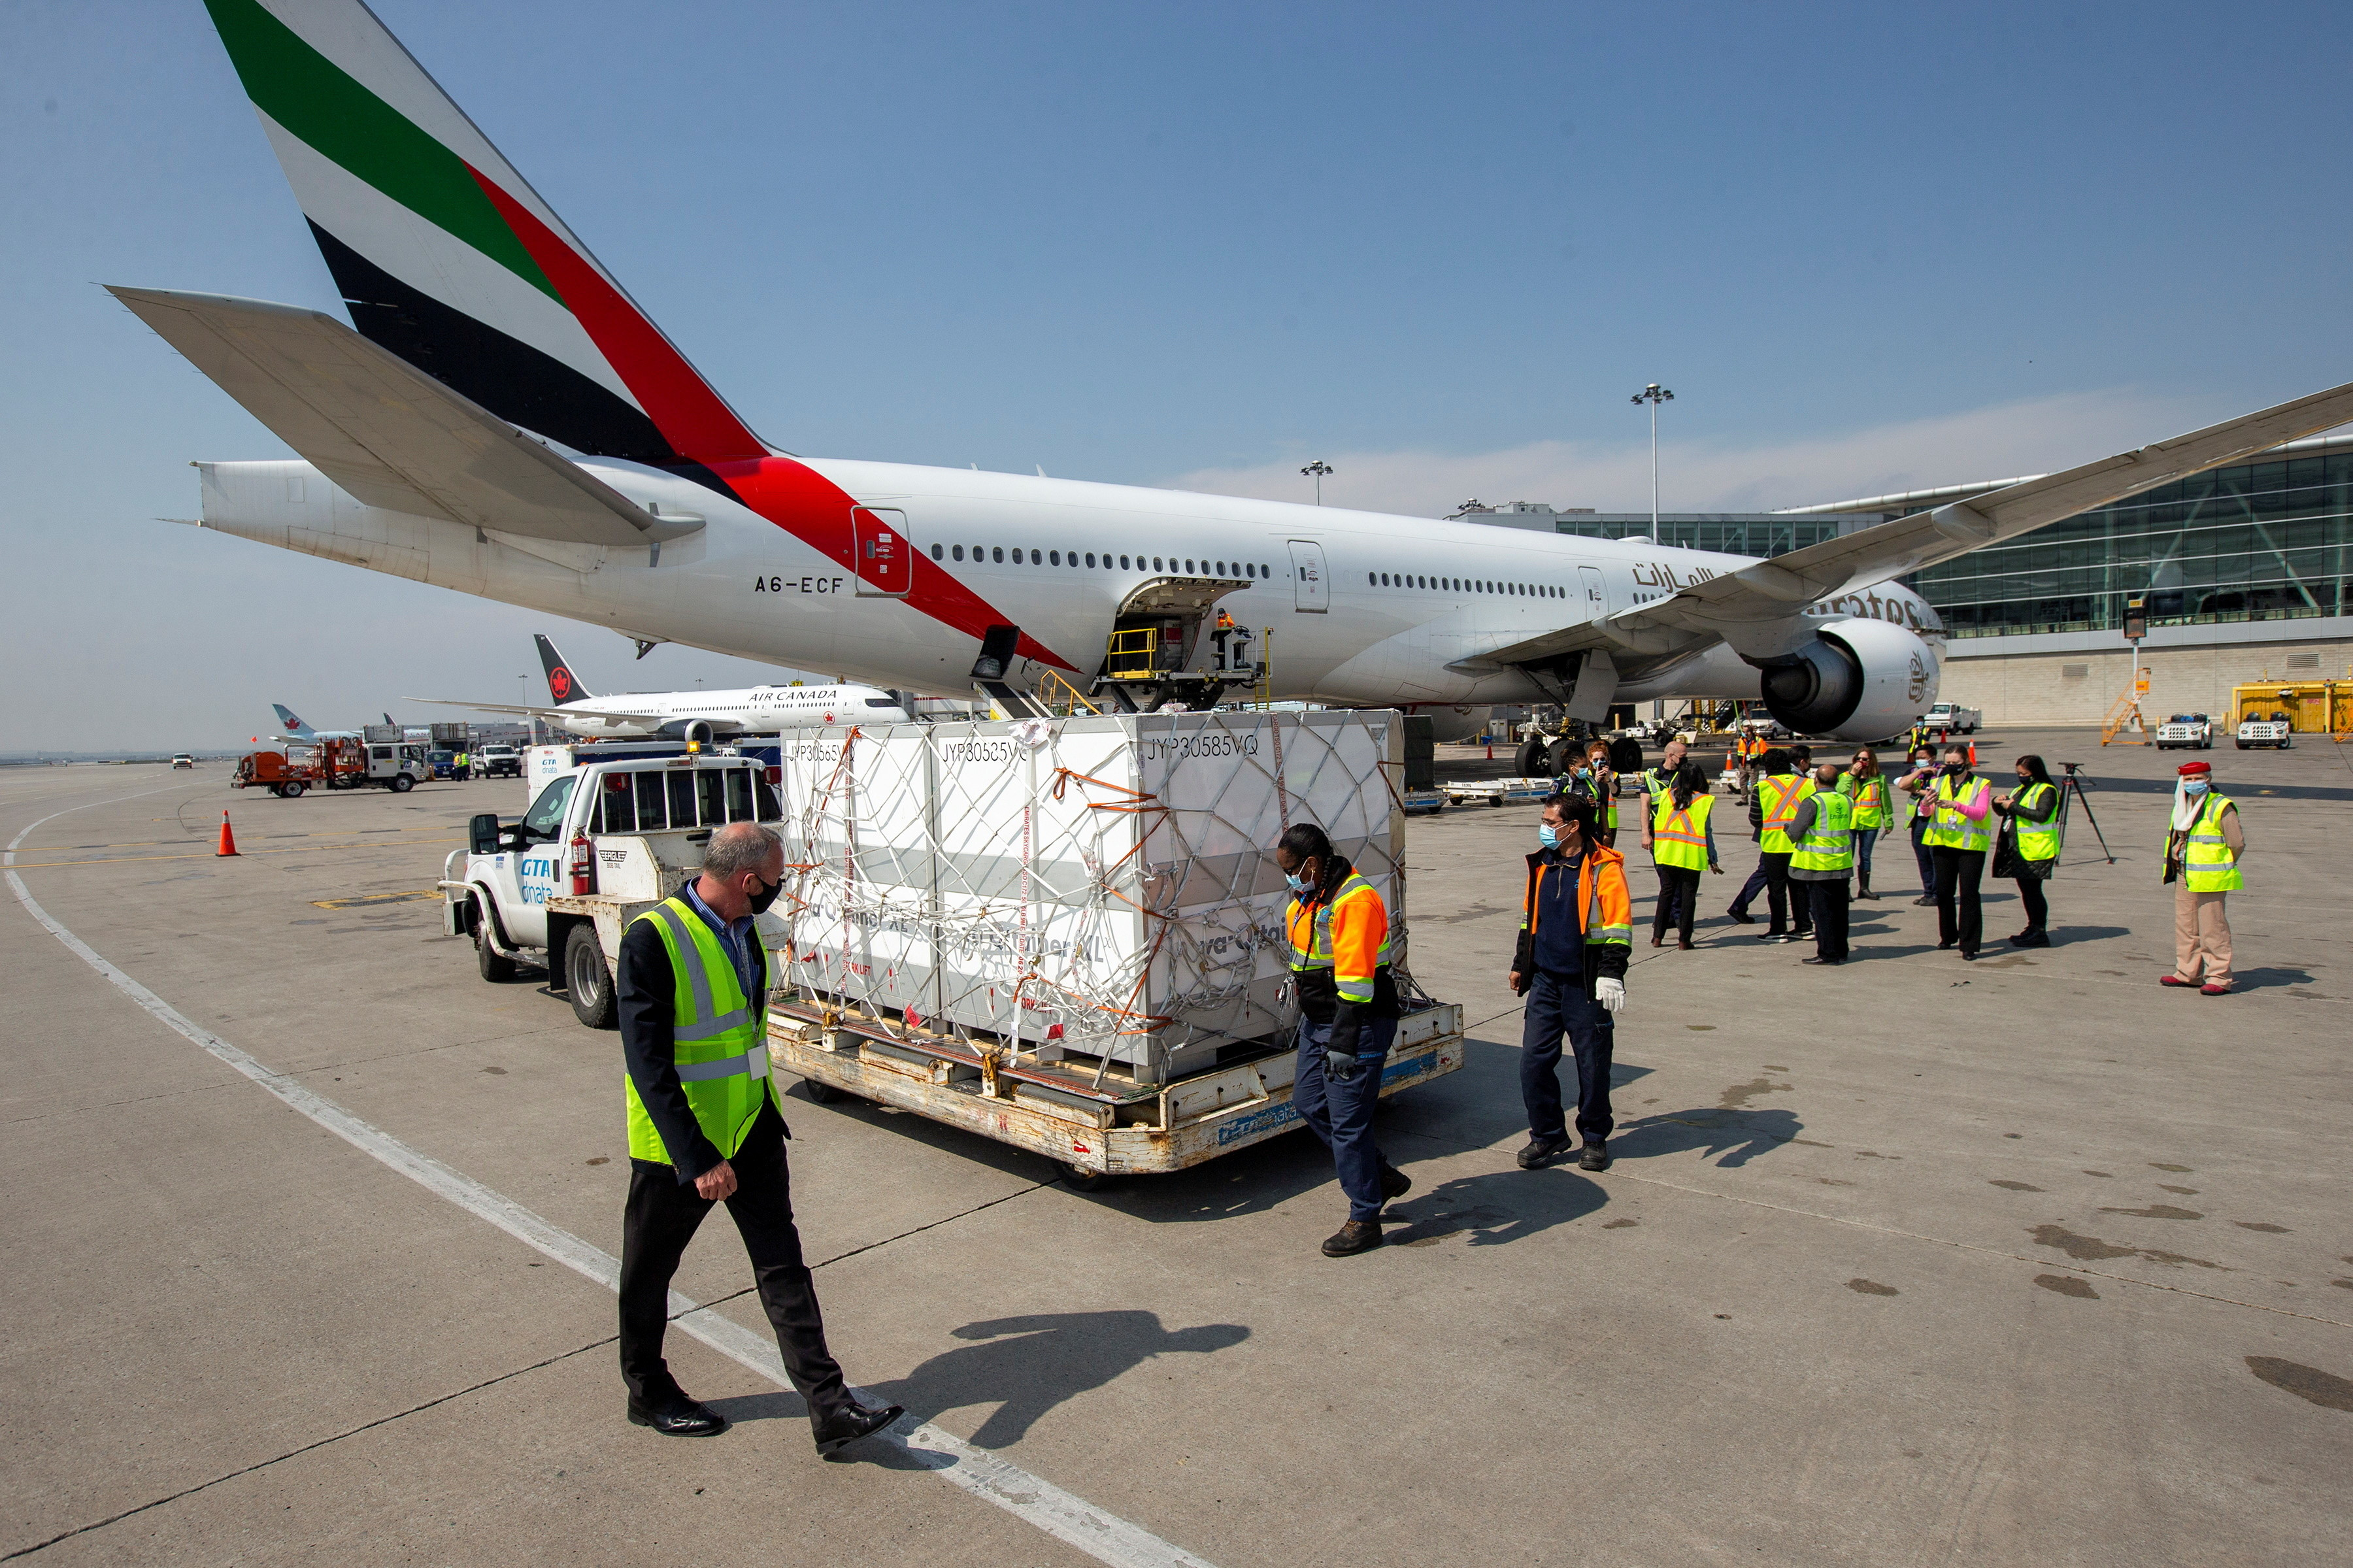 Ground crew unload a shipment from South Africa of the Johnson & Johnson vaccine against the coronavirus disease (COVID-19) at Toronto Pearson Airport in Mississauga, Ontario, Canada April 28, 2021. REUTERS/Carlos Osorio - RC235N9ADHGI